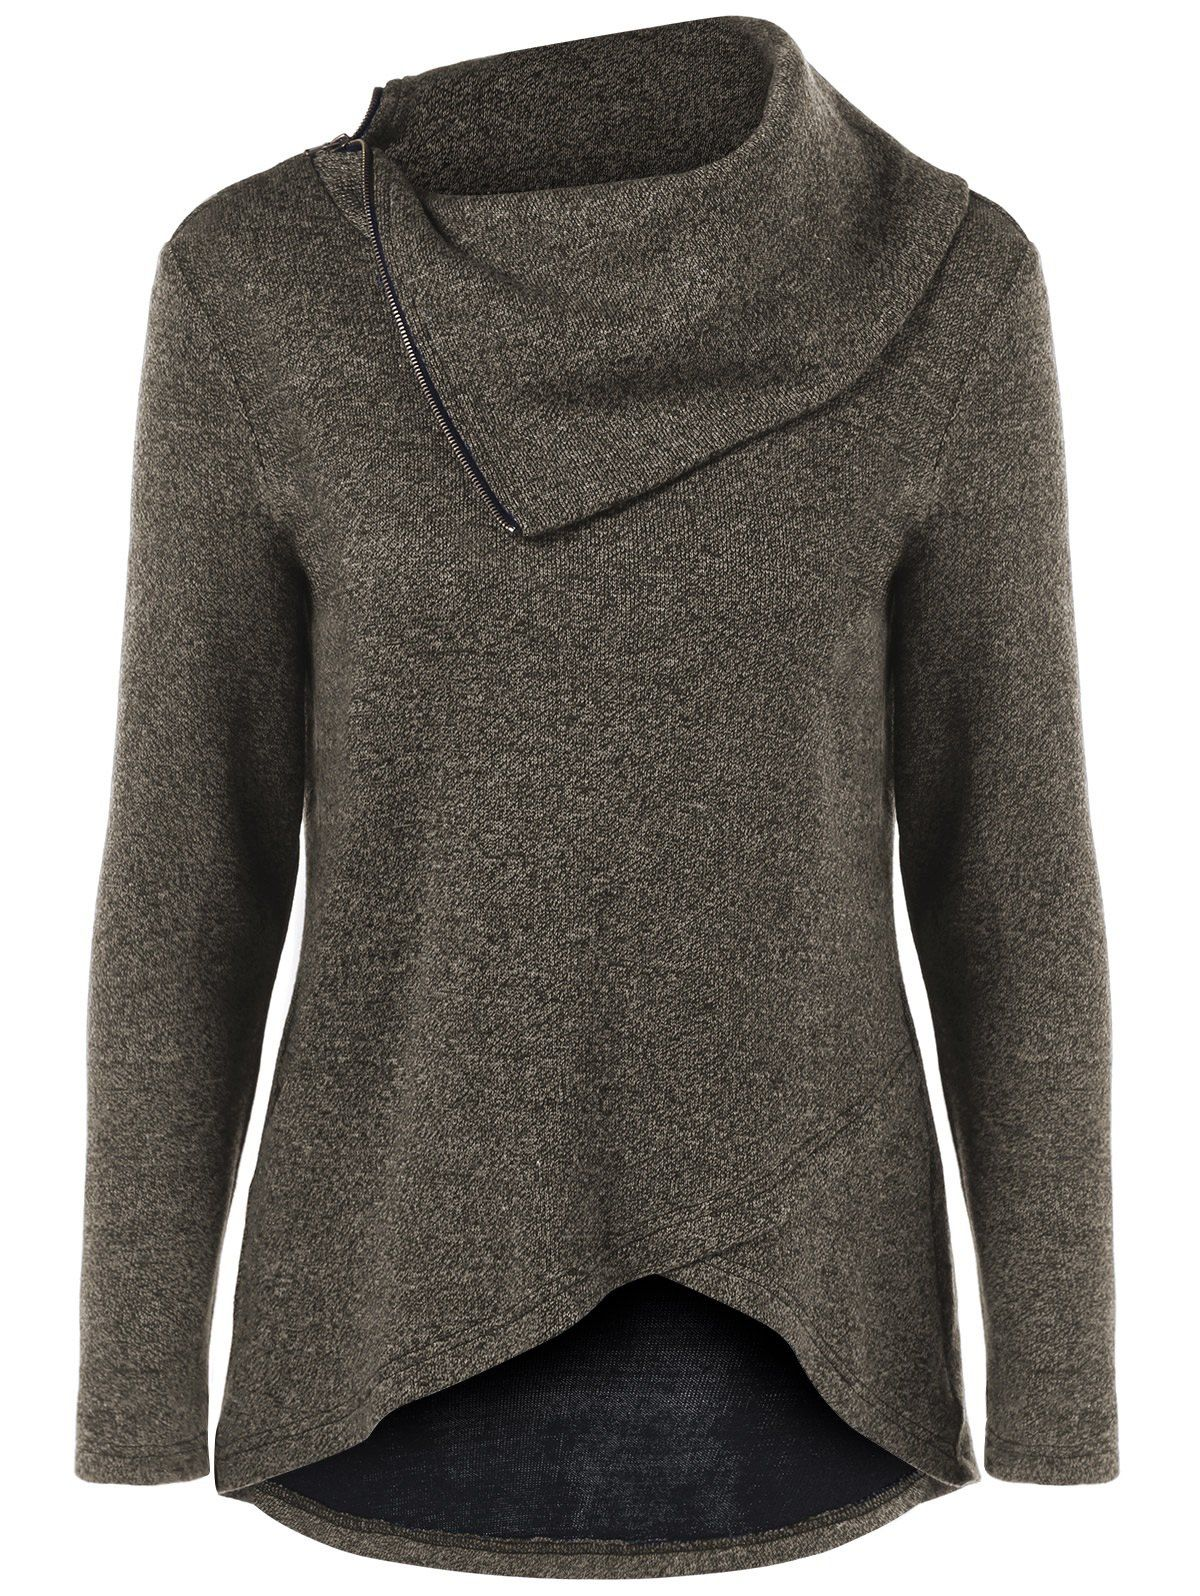 Funnel Neck Tulip Hem Knitwear in Khaki Grey | Sammydress.com